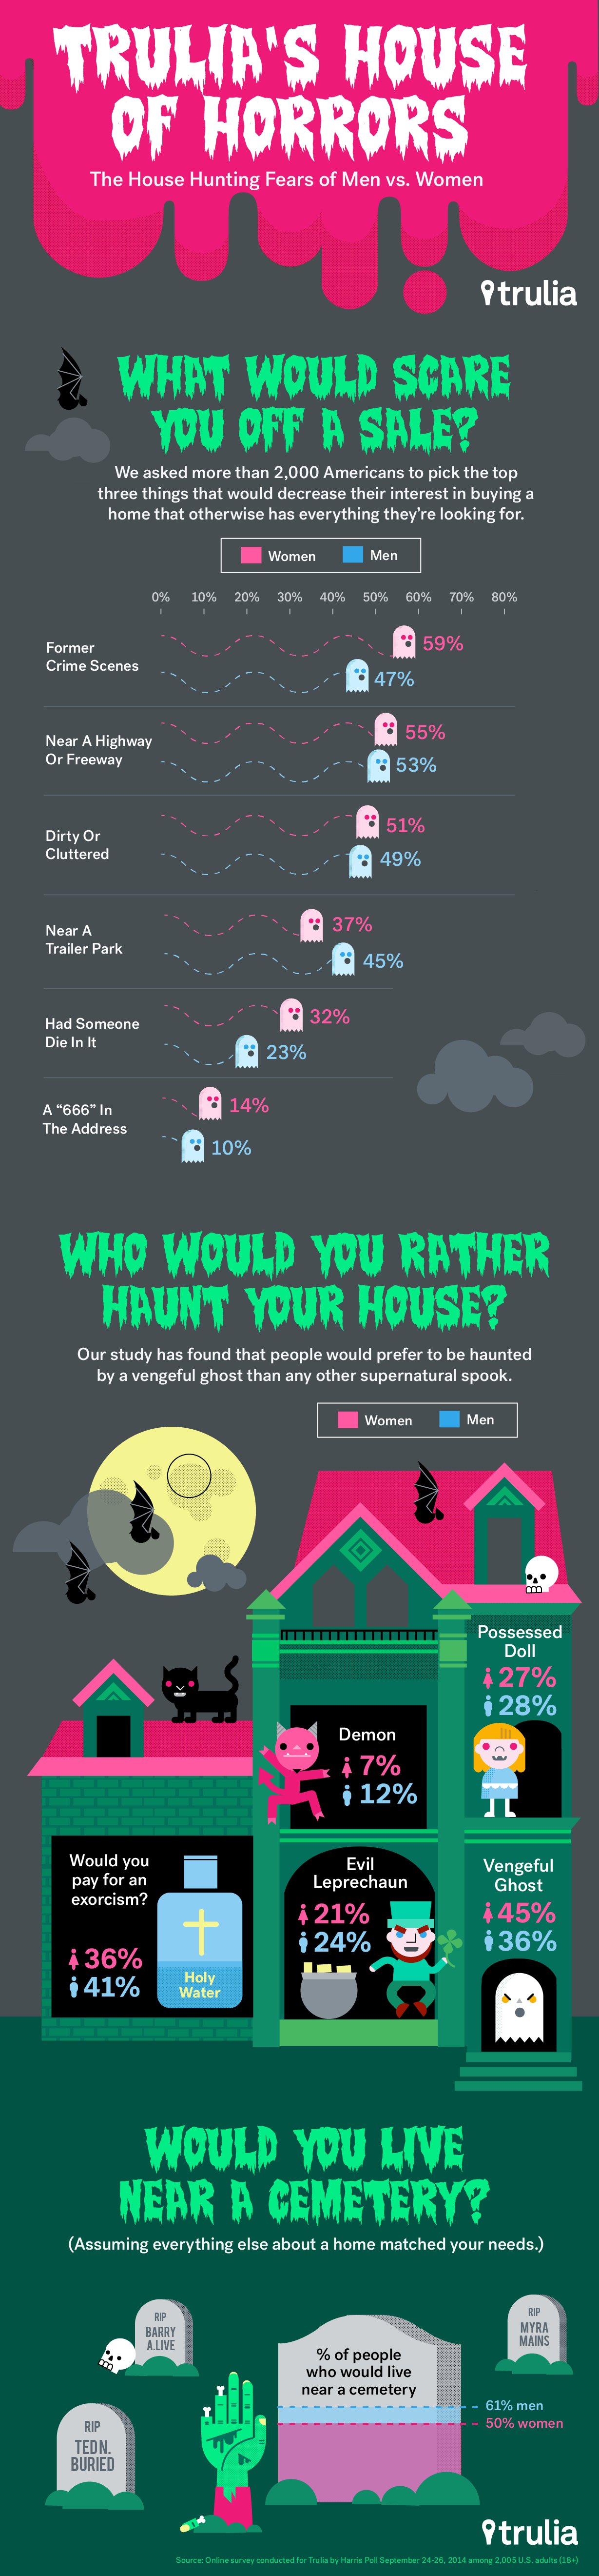 Trulia's House of Horrors Infographic